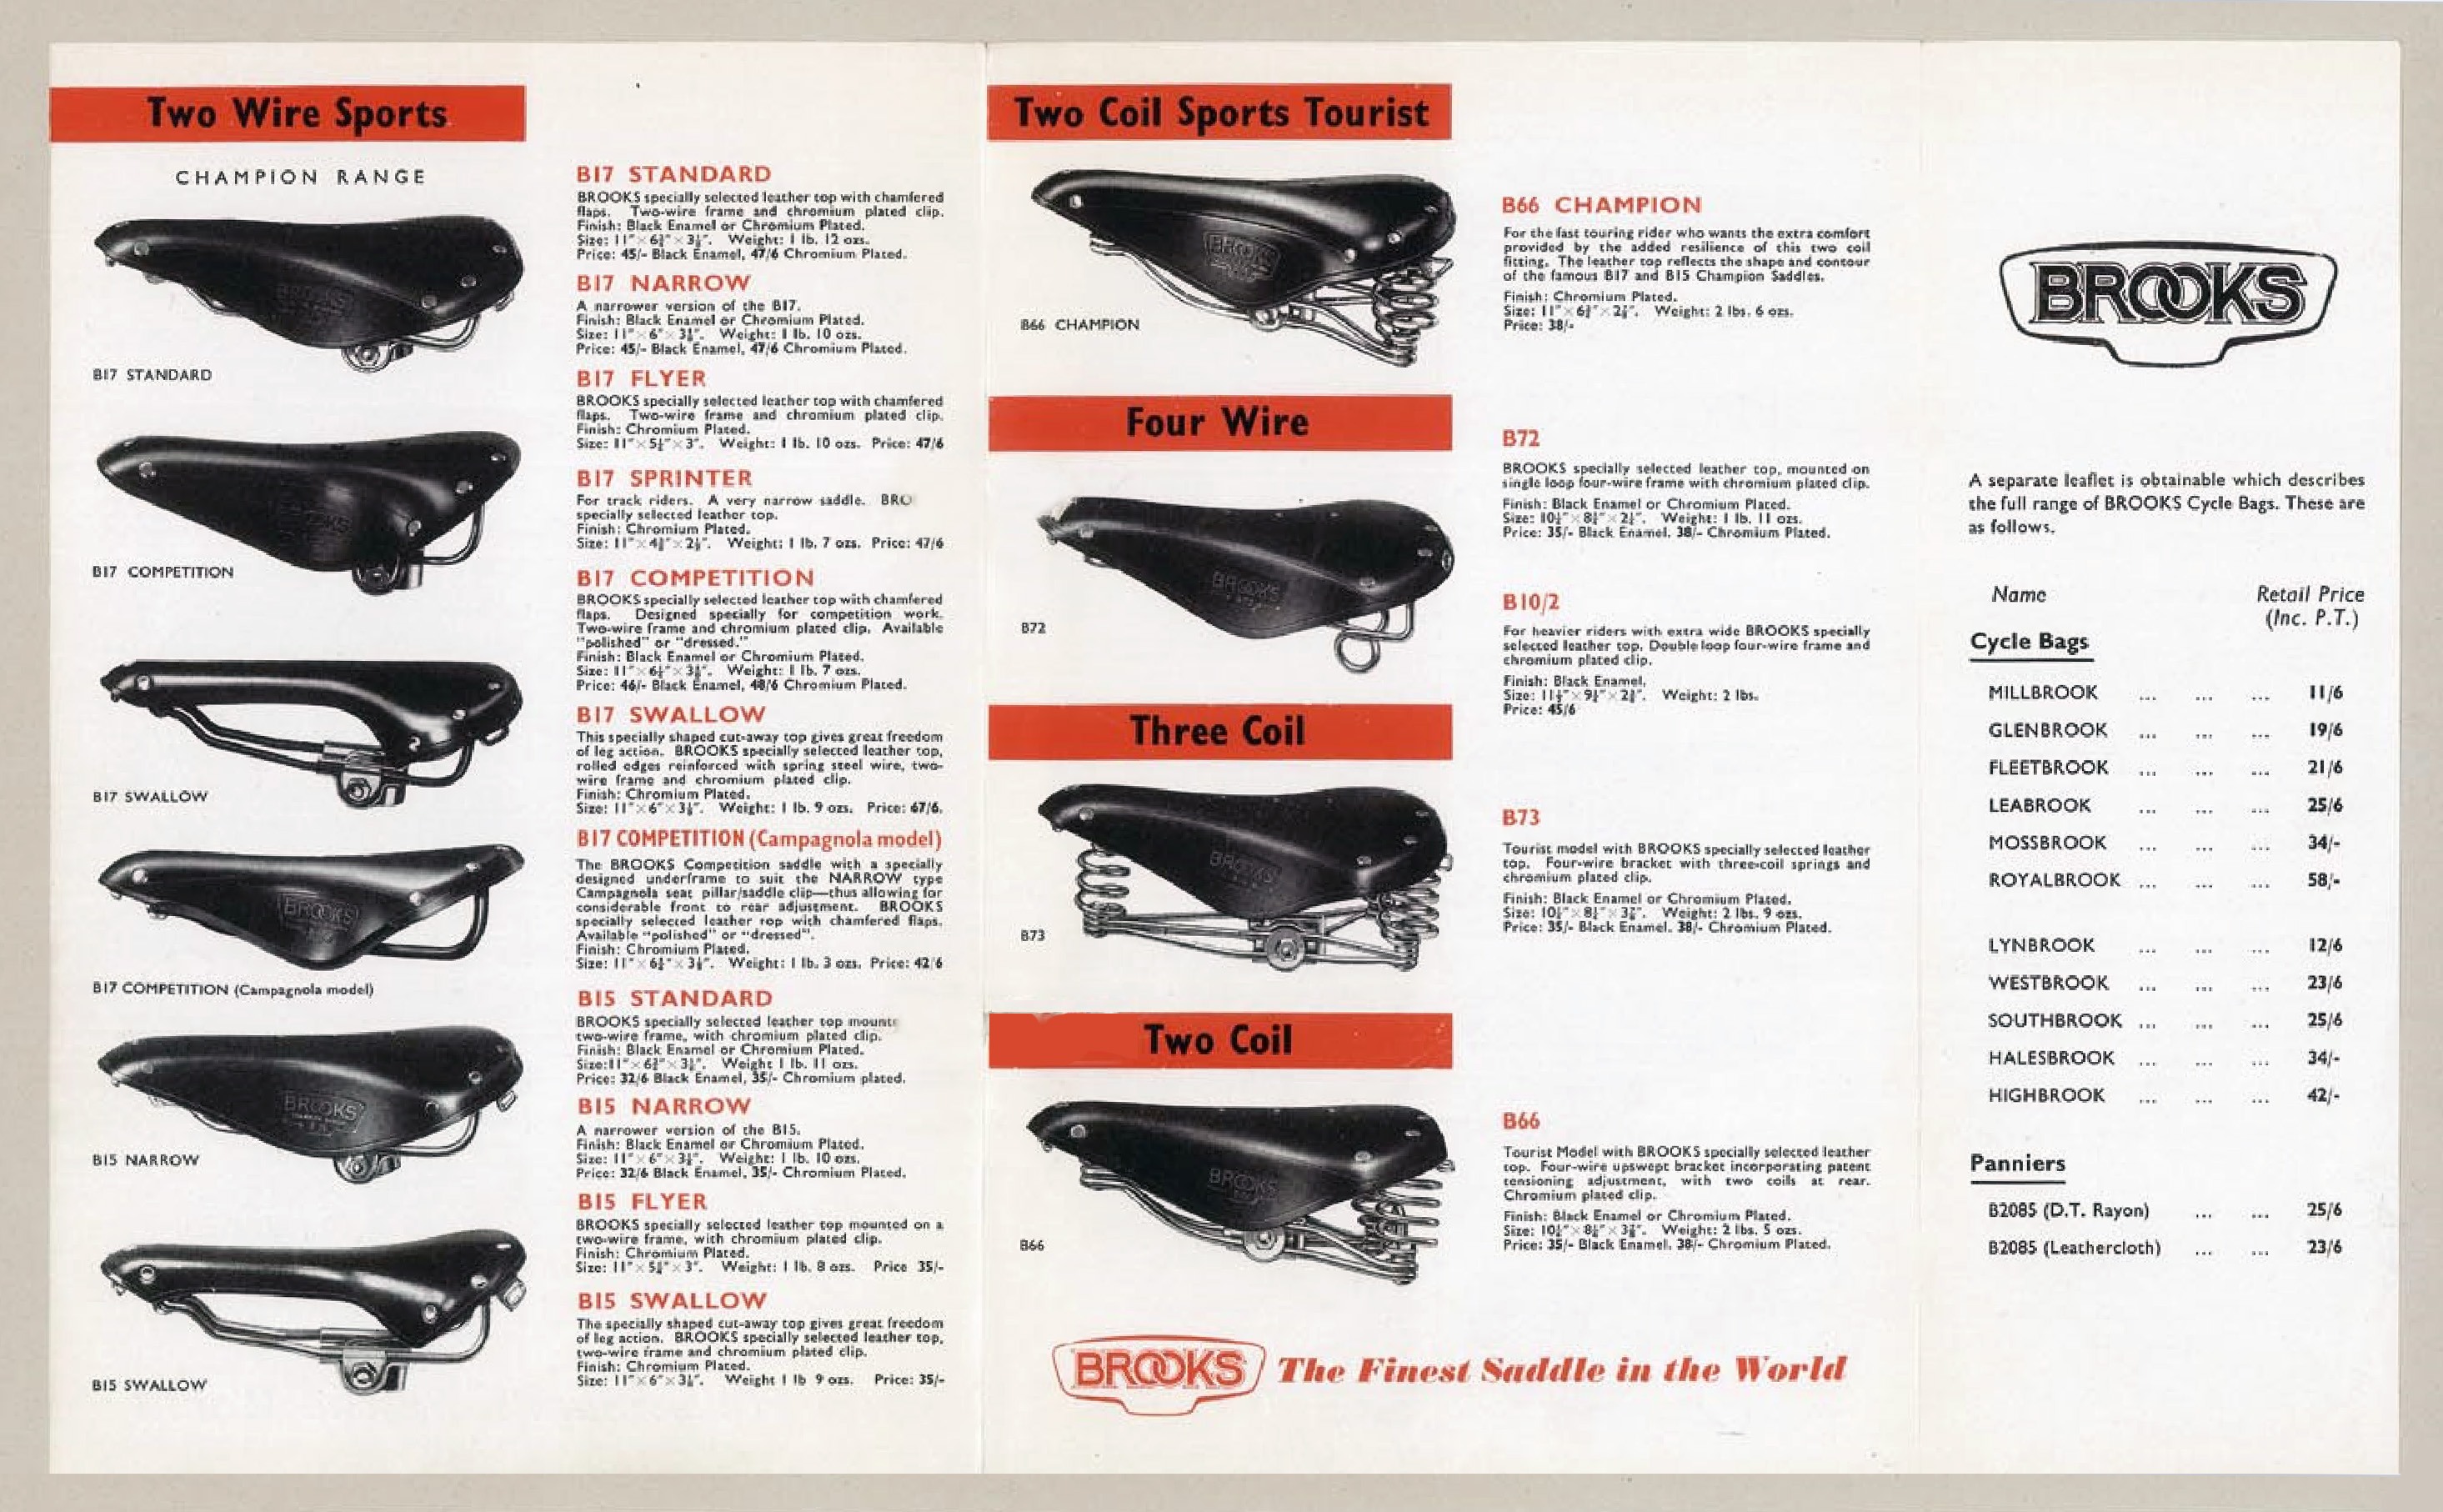 ebykr-brooks-1959-catalog-cycle-saddles-second-leaf